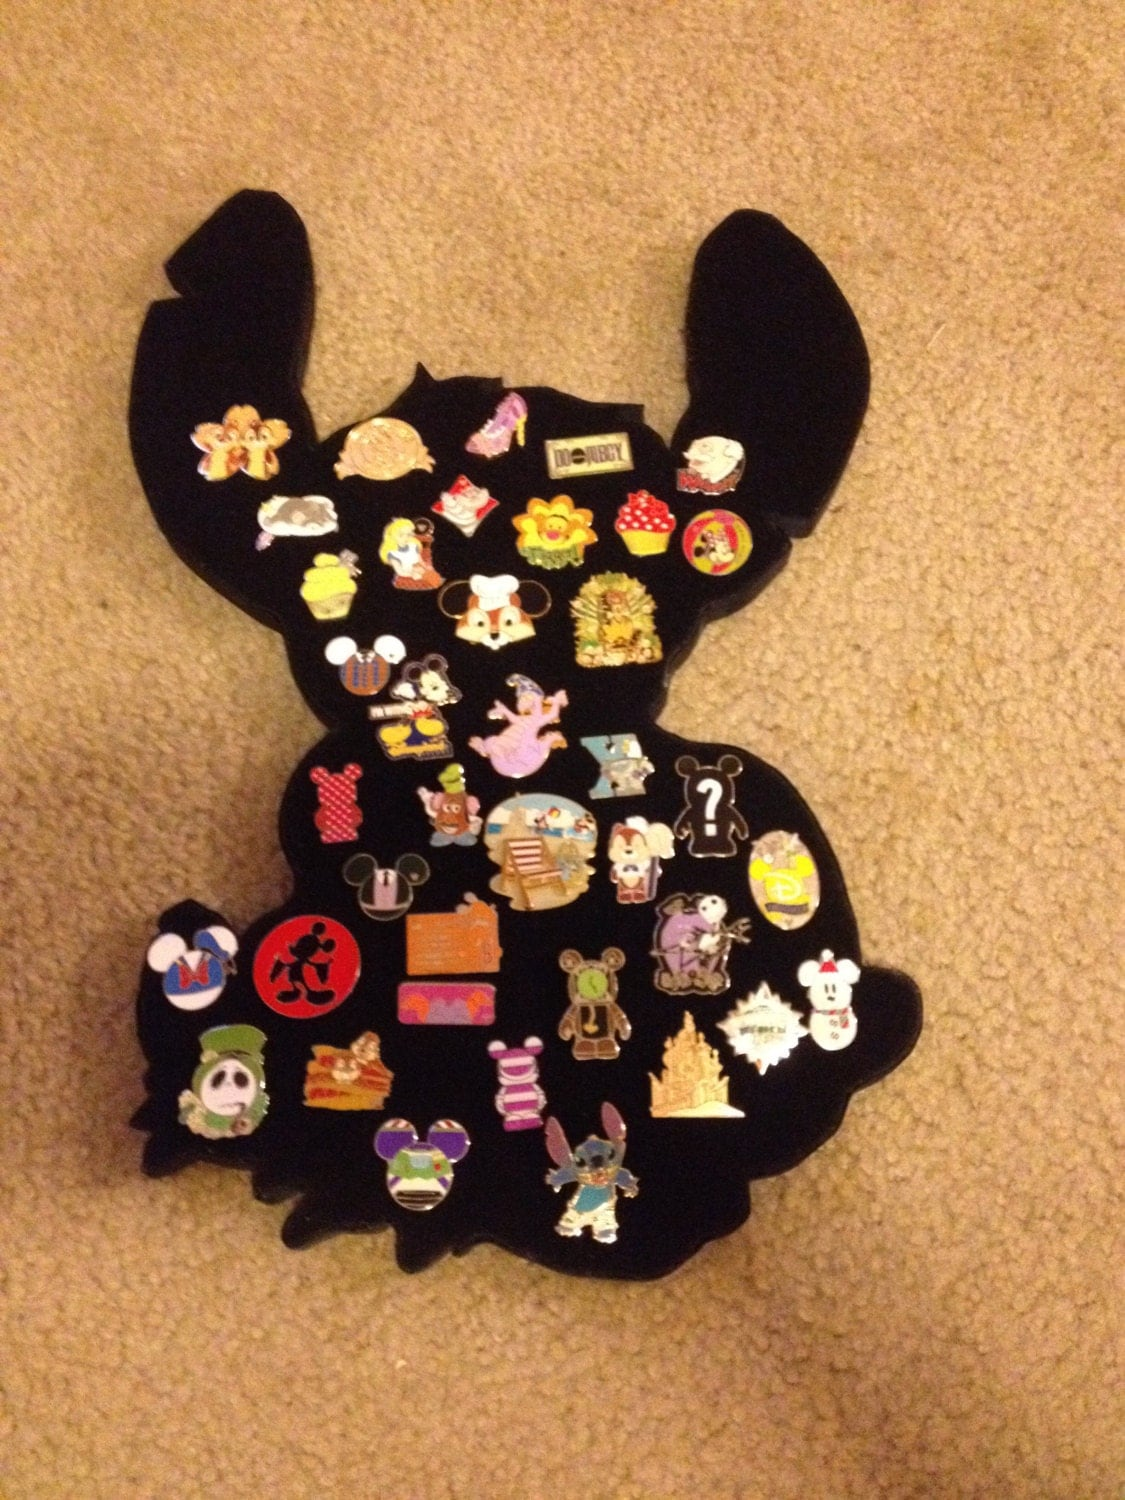 Stitch Disney Pin Collector Display Can Hold About 45 Pins